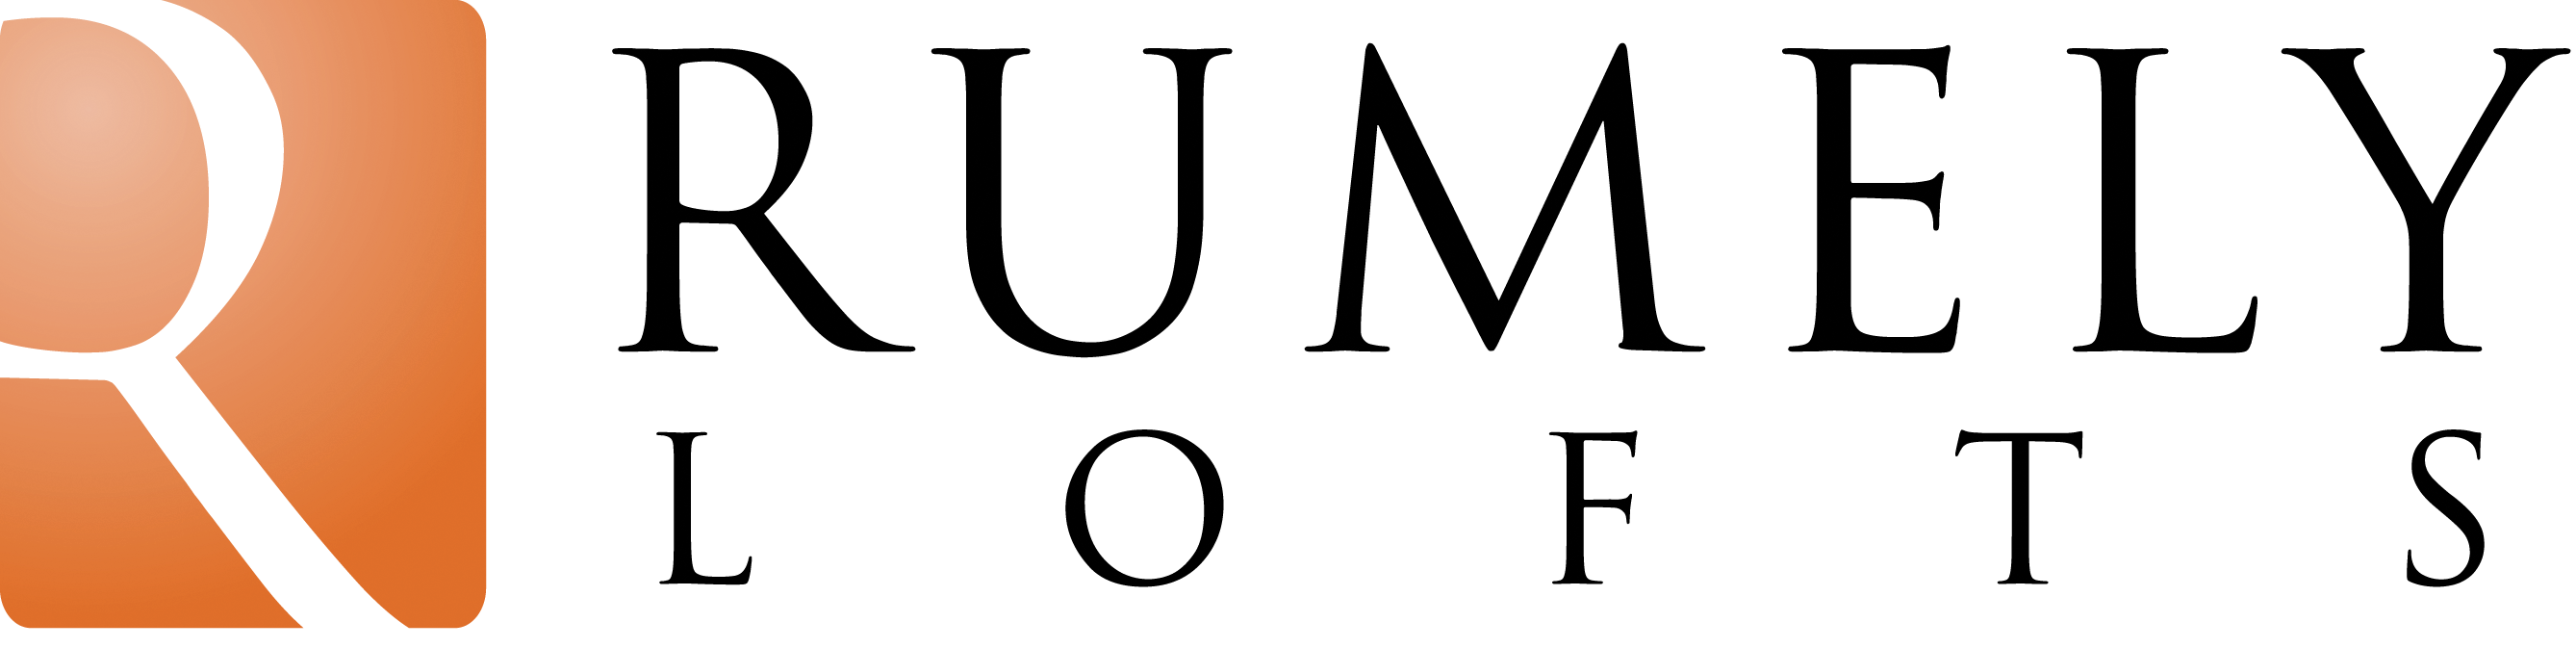 Rumely Lofts Logo